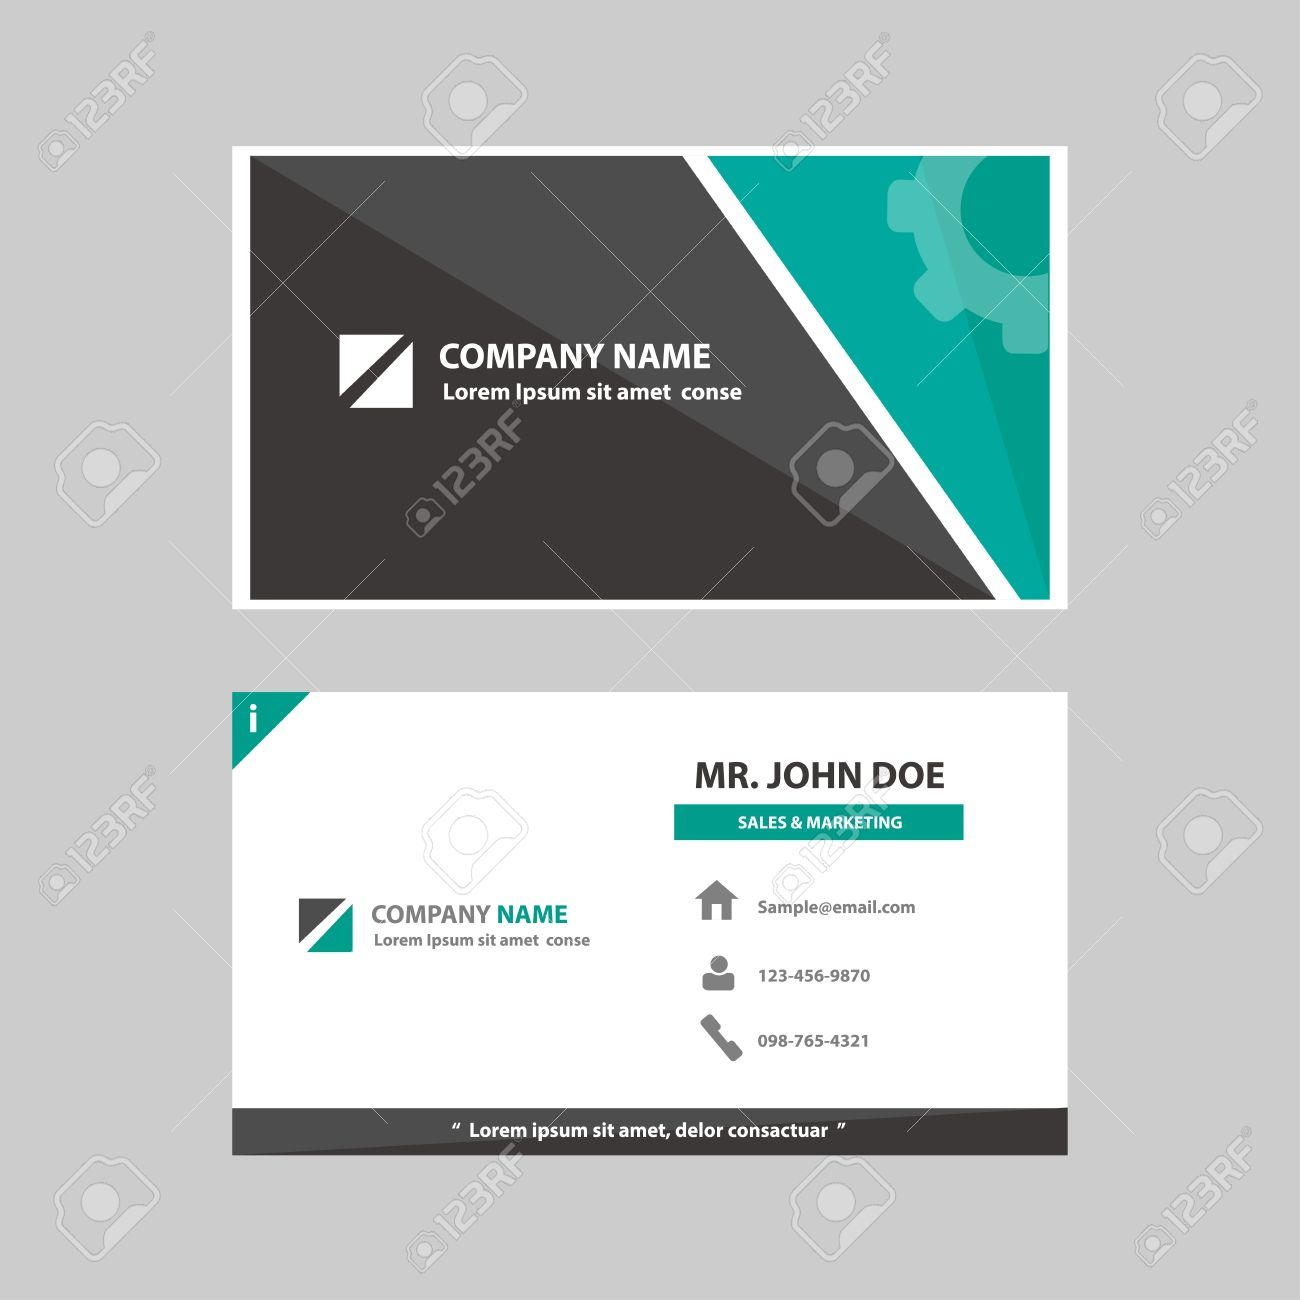 Company Business Profile Template Business Companyprofile – Business Profile Template